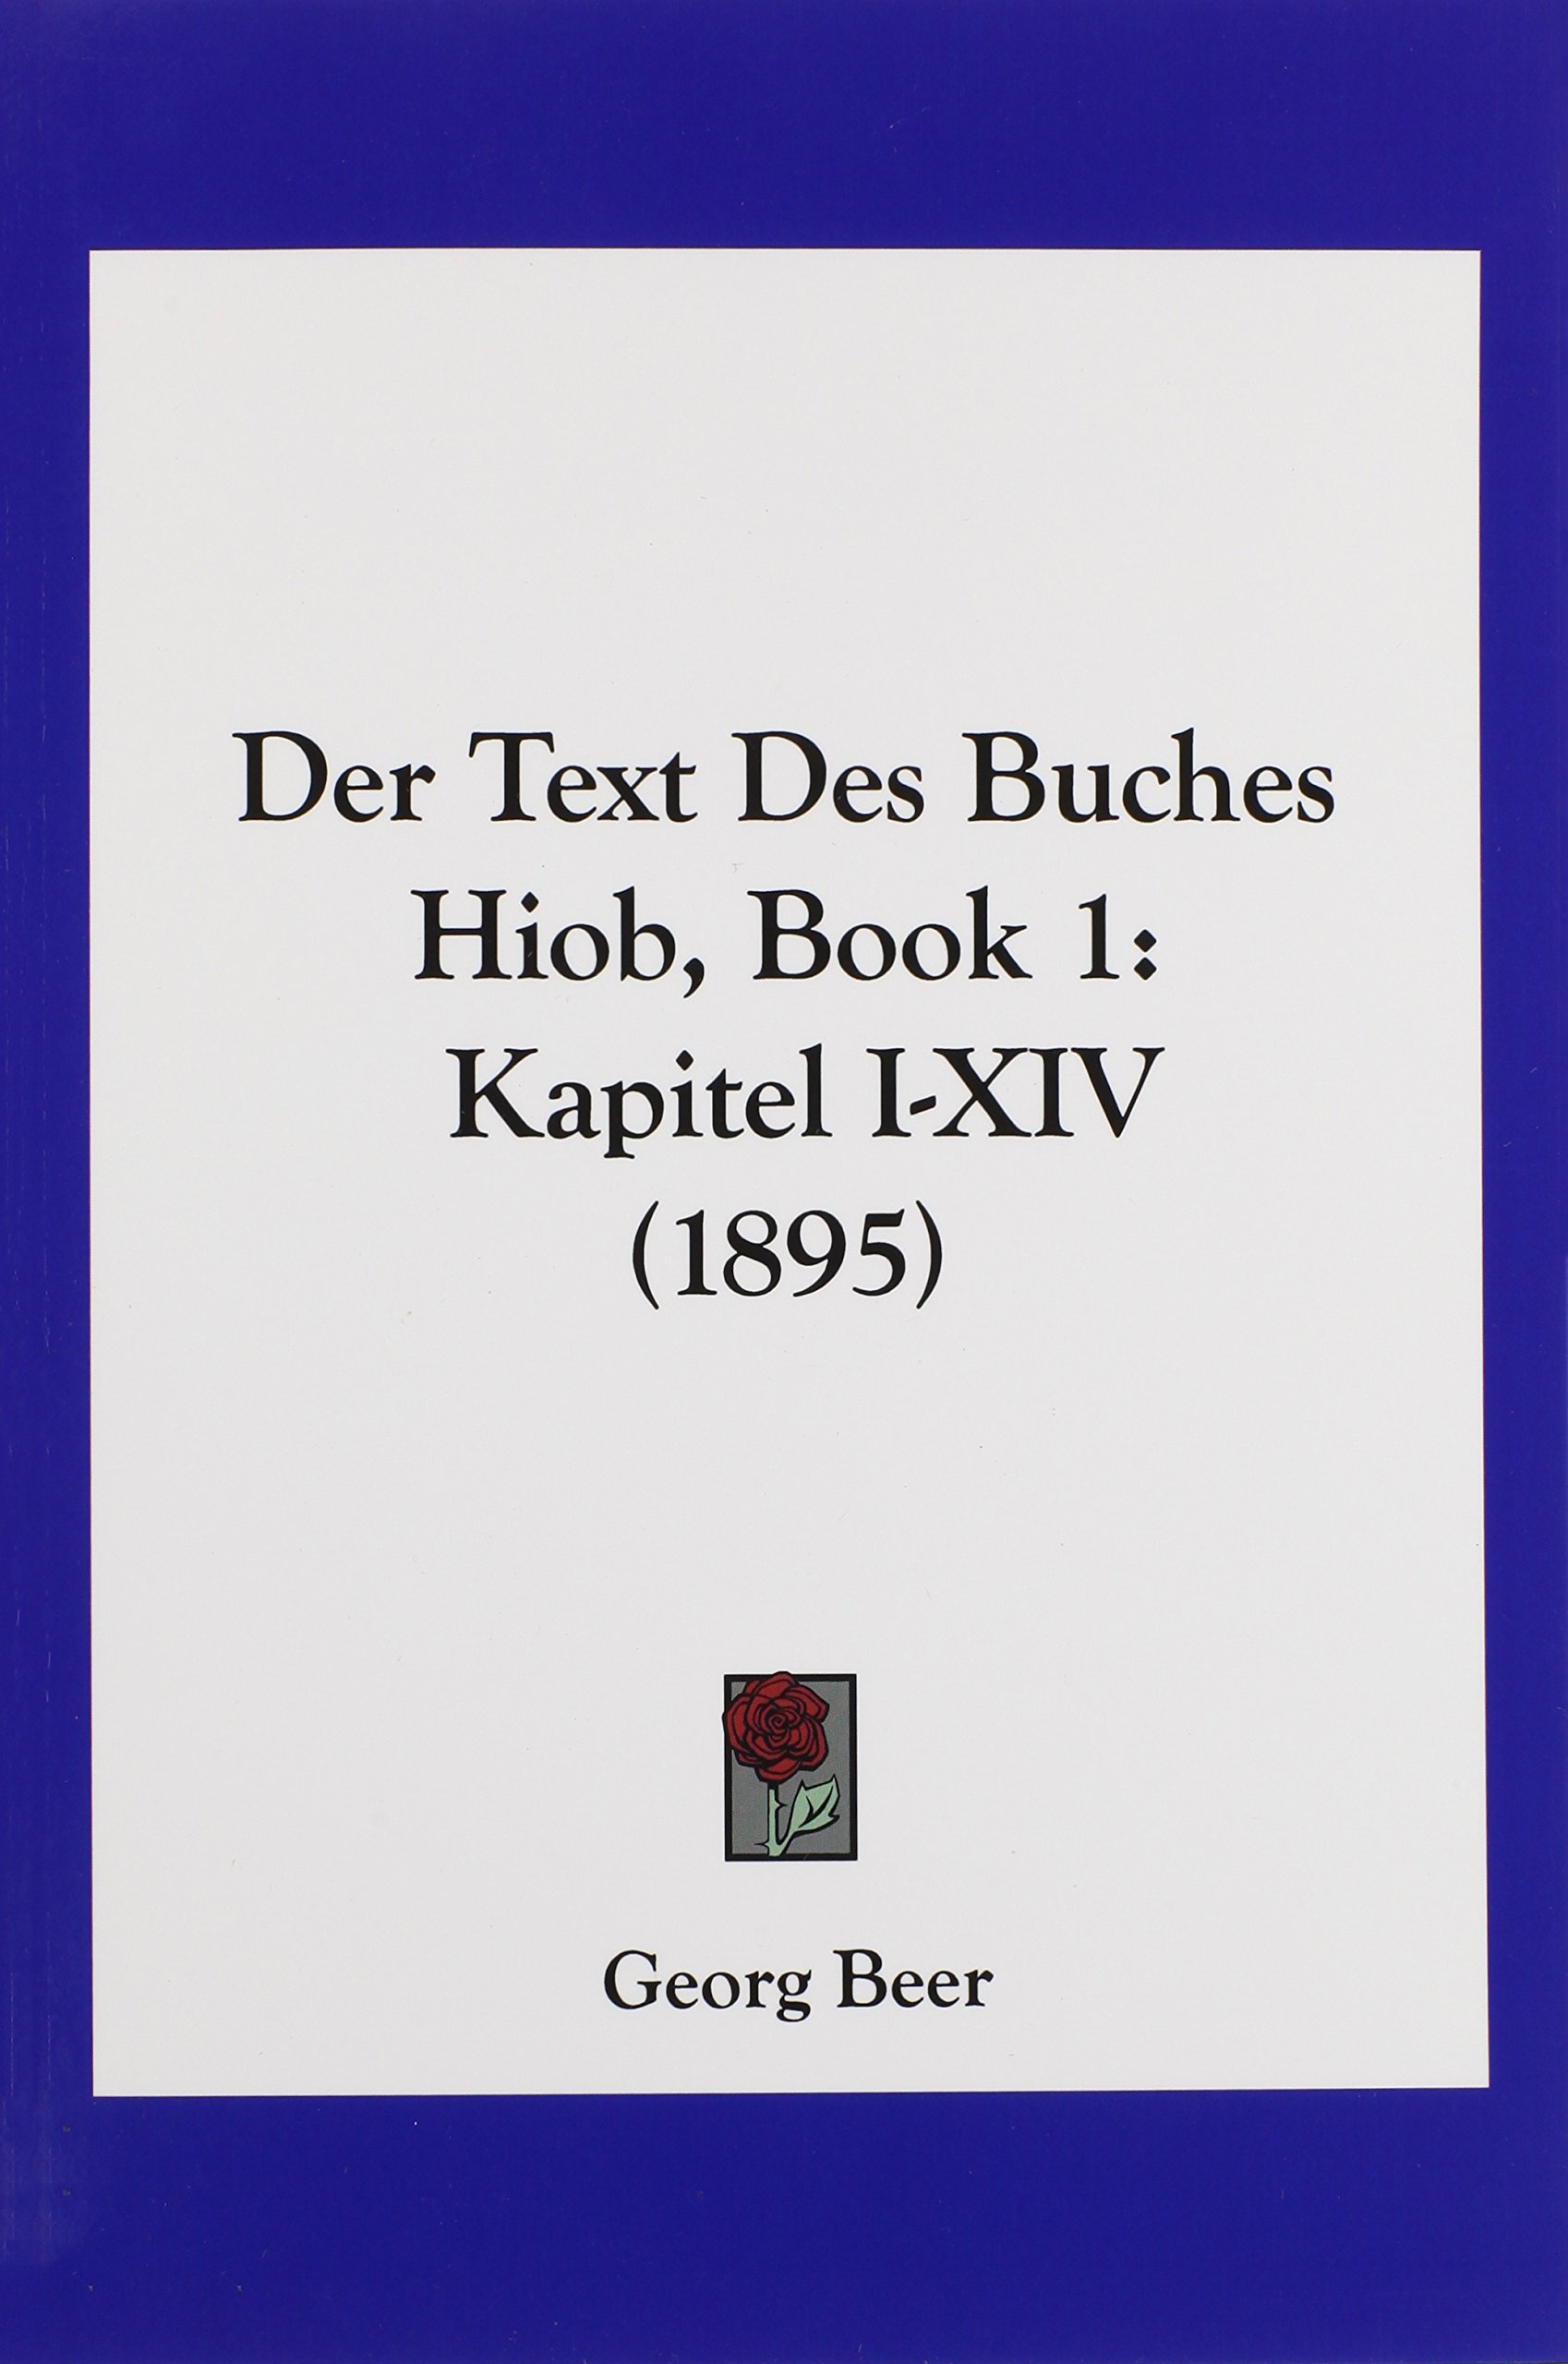 Der Text Des Buches Hiob, Book 1: Kapitel I-XIV (1895) (German Edition) PDF